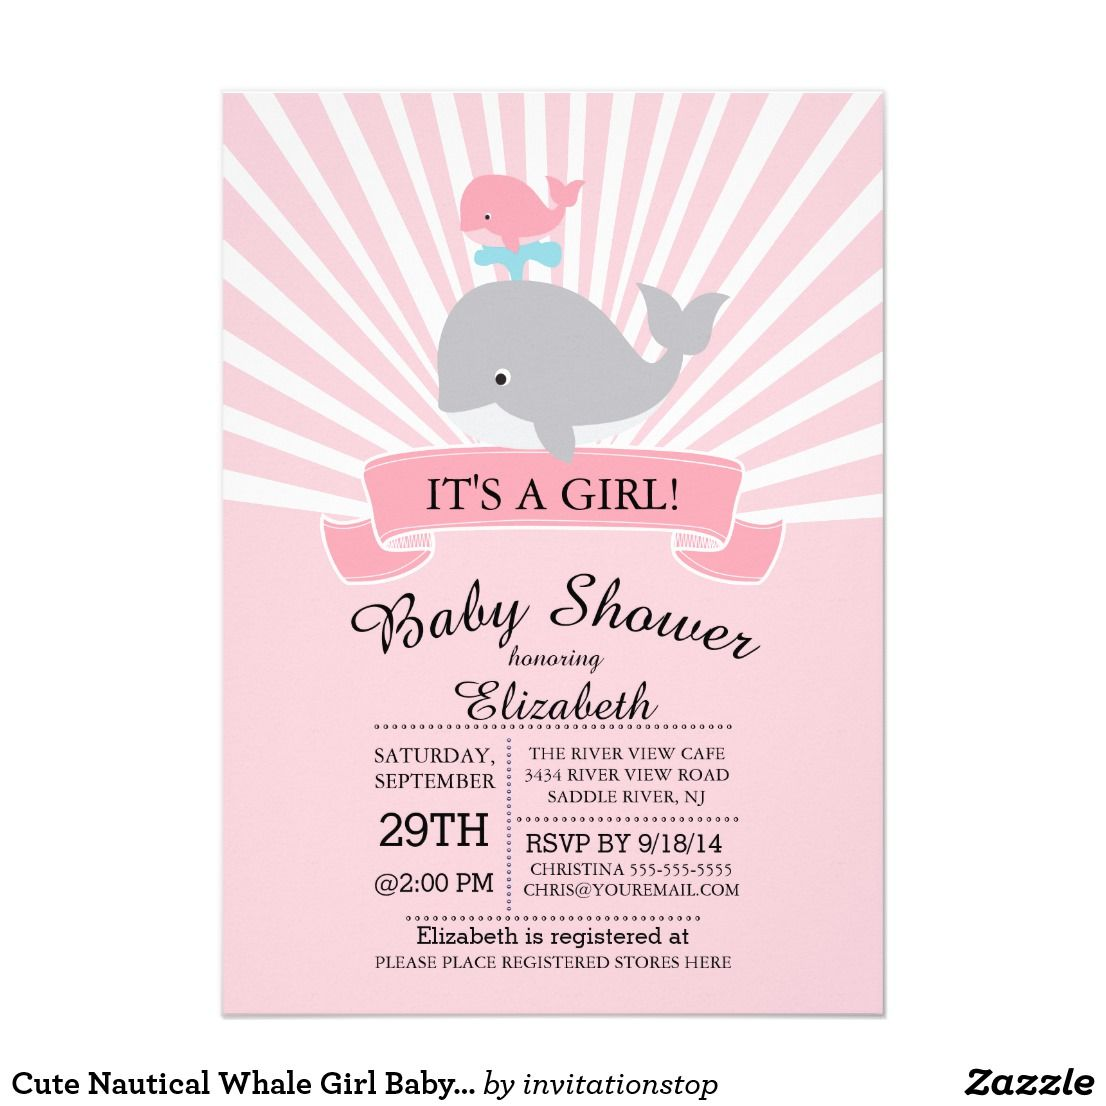 Cute Nautical Whale Girl Baby Shower Invitation | Shower invitations